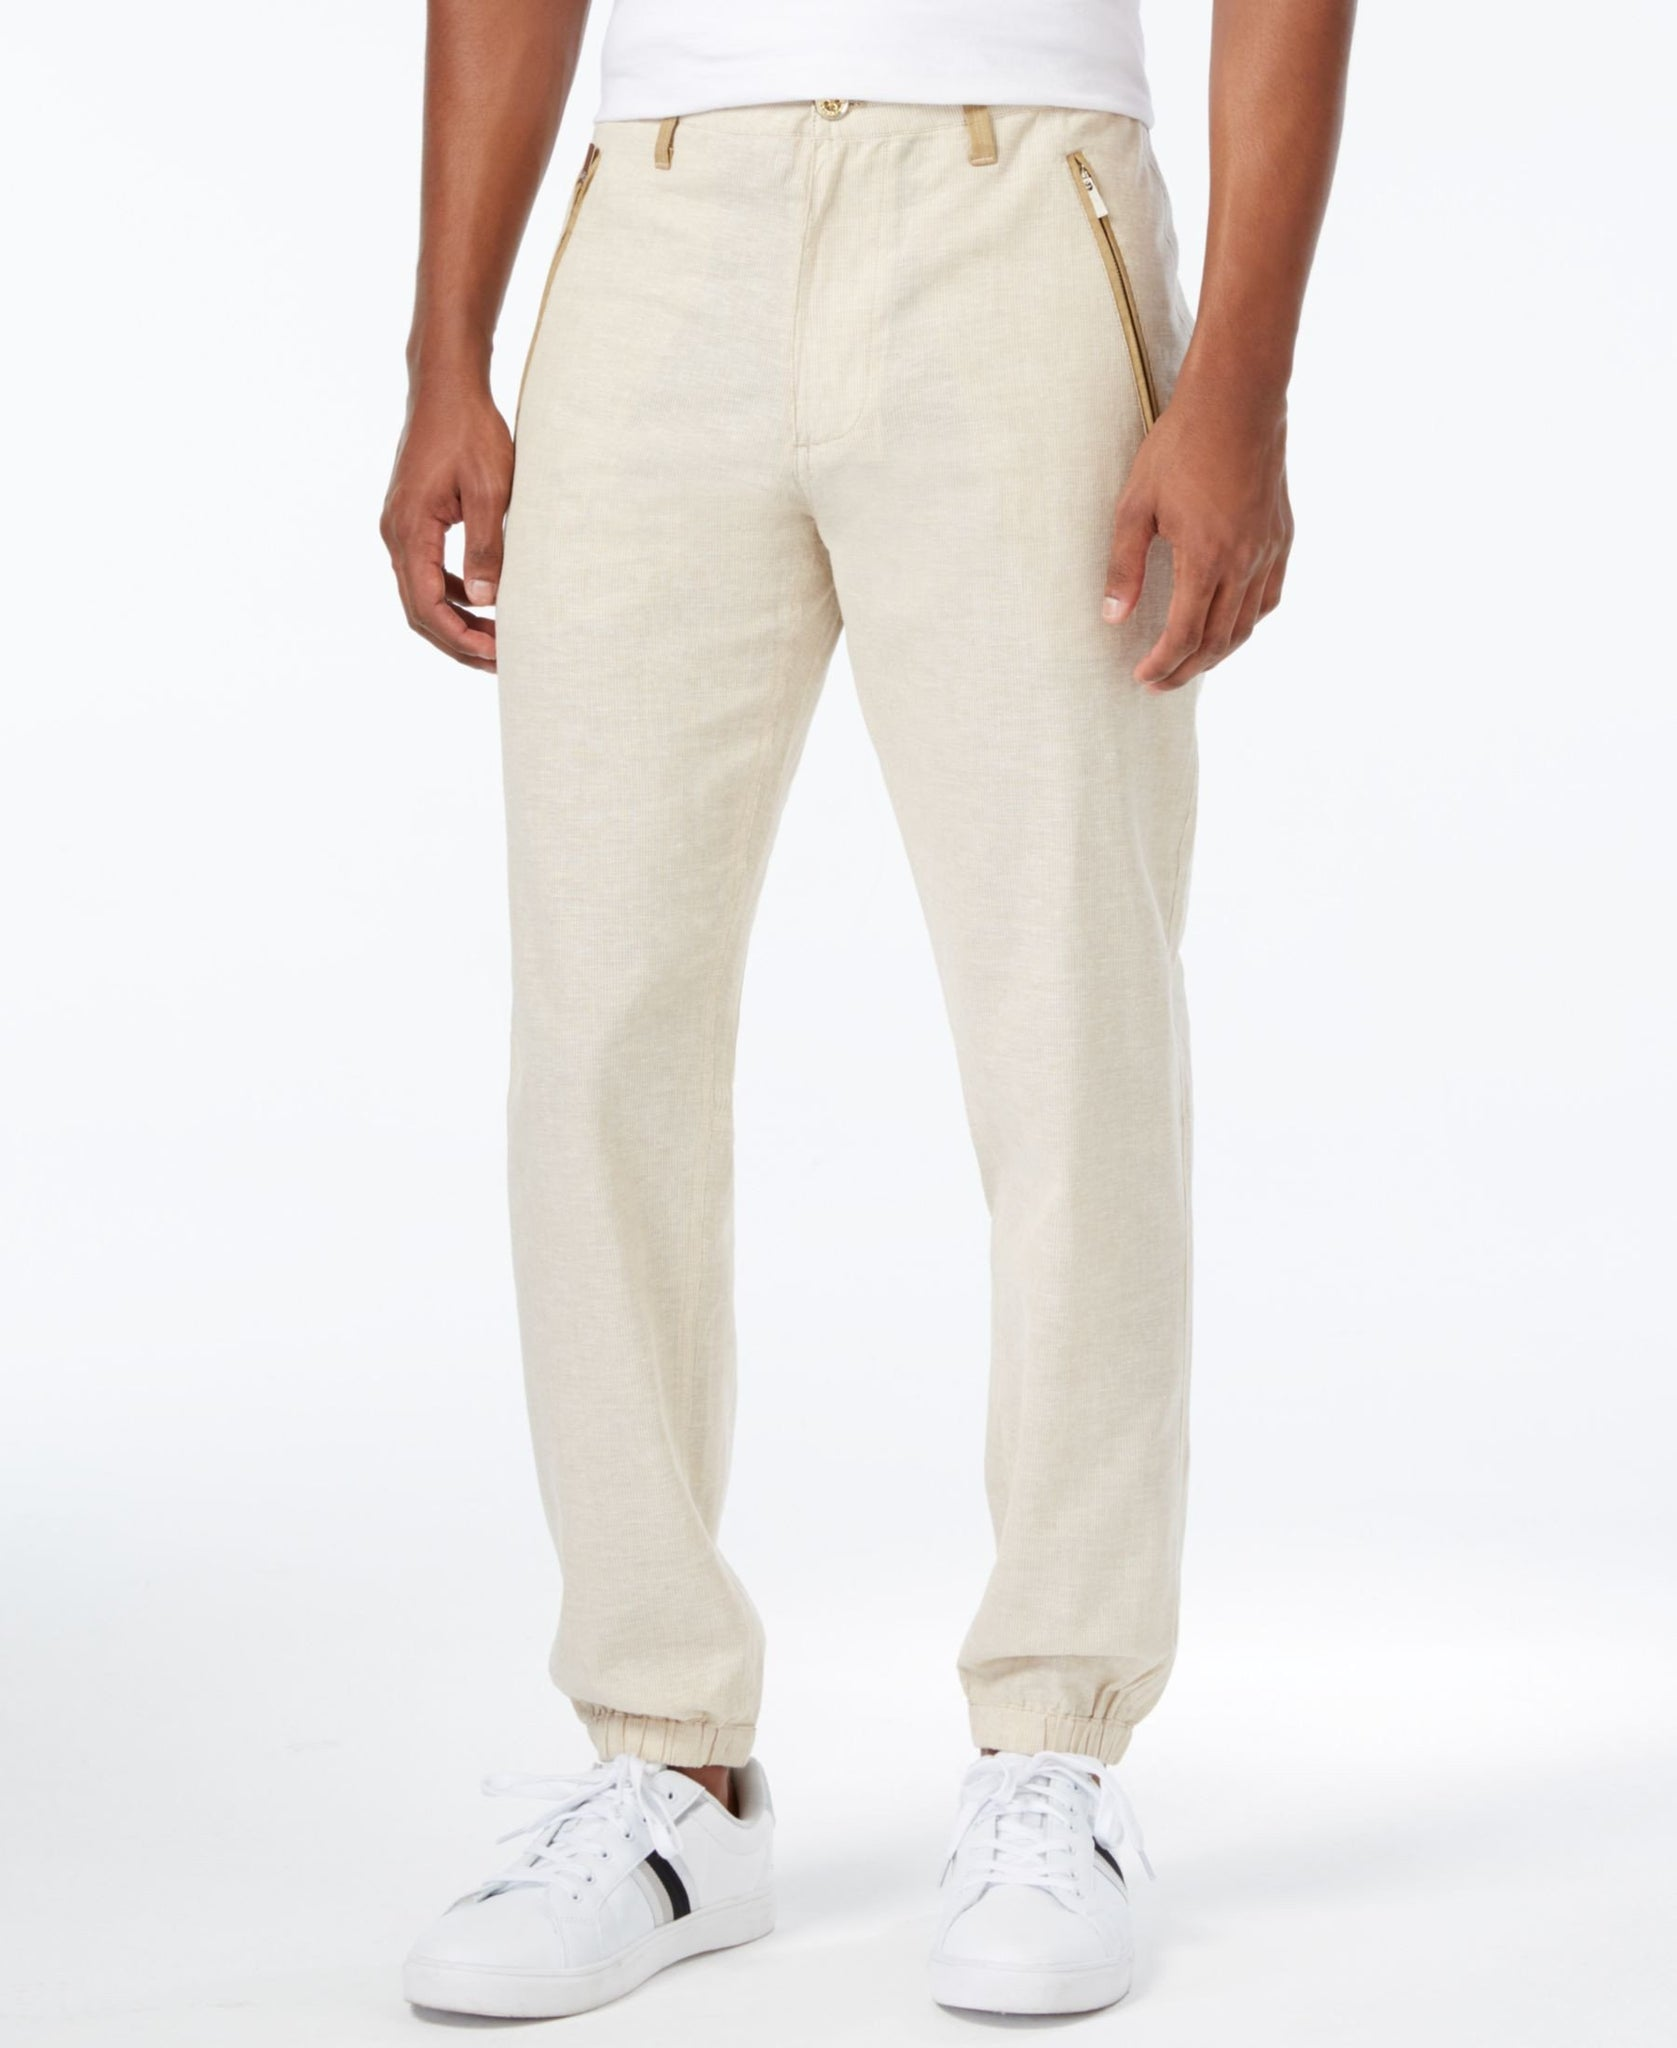 Sean John Men's Lightweight Linen Joggers